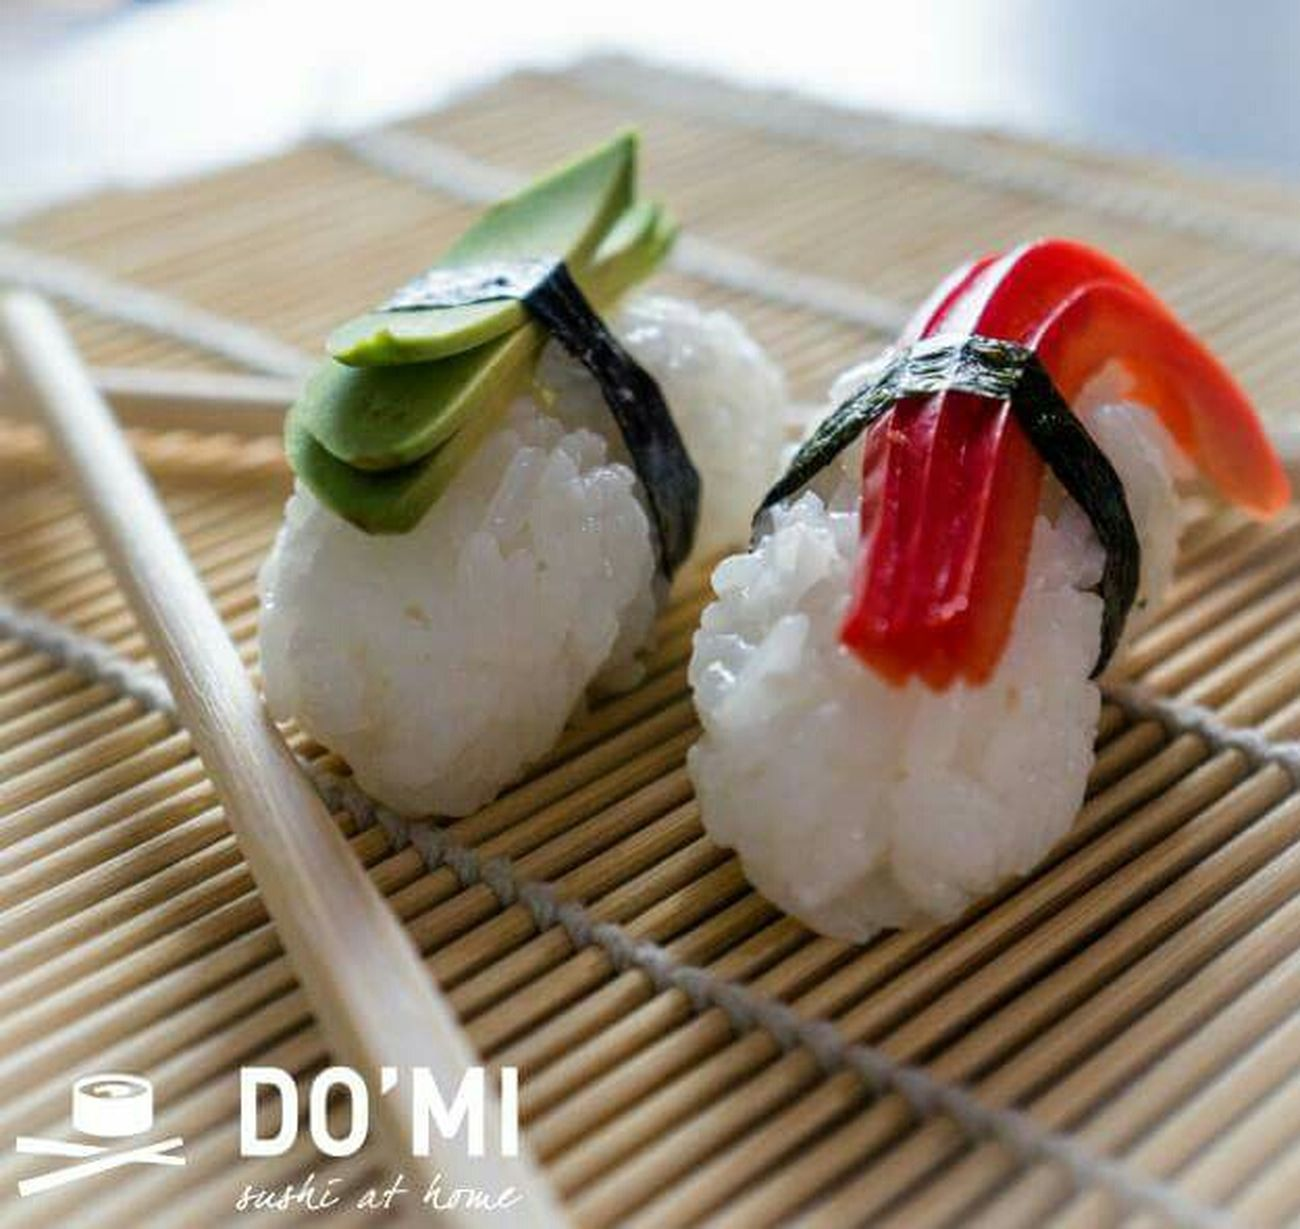 Nigiri Sushi Sushi Time Sushi Sushi Lover Sushi Vege Vegetarian Food Hello World Www.sushidomi.com Sushi At Home More: www.sushidomi.com/nigiri